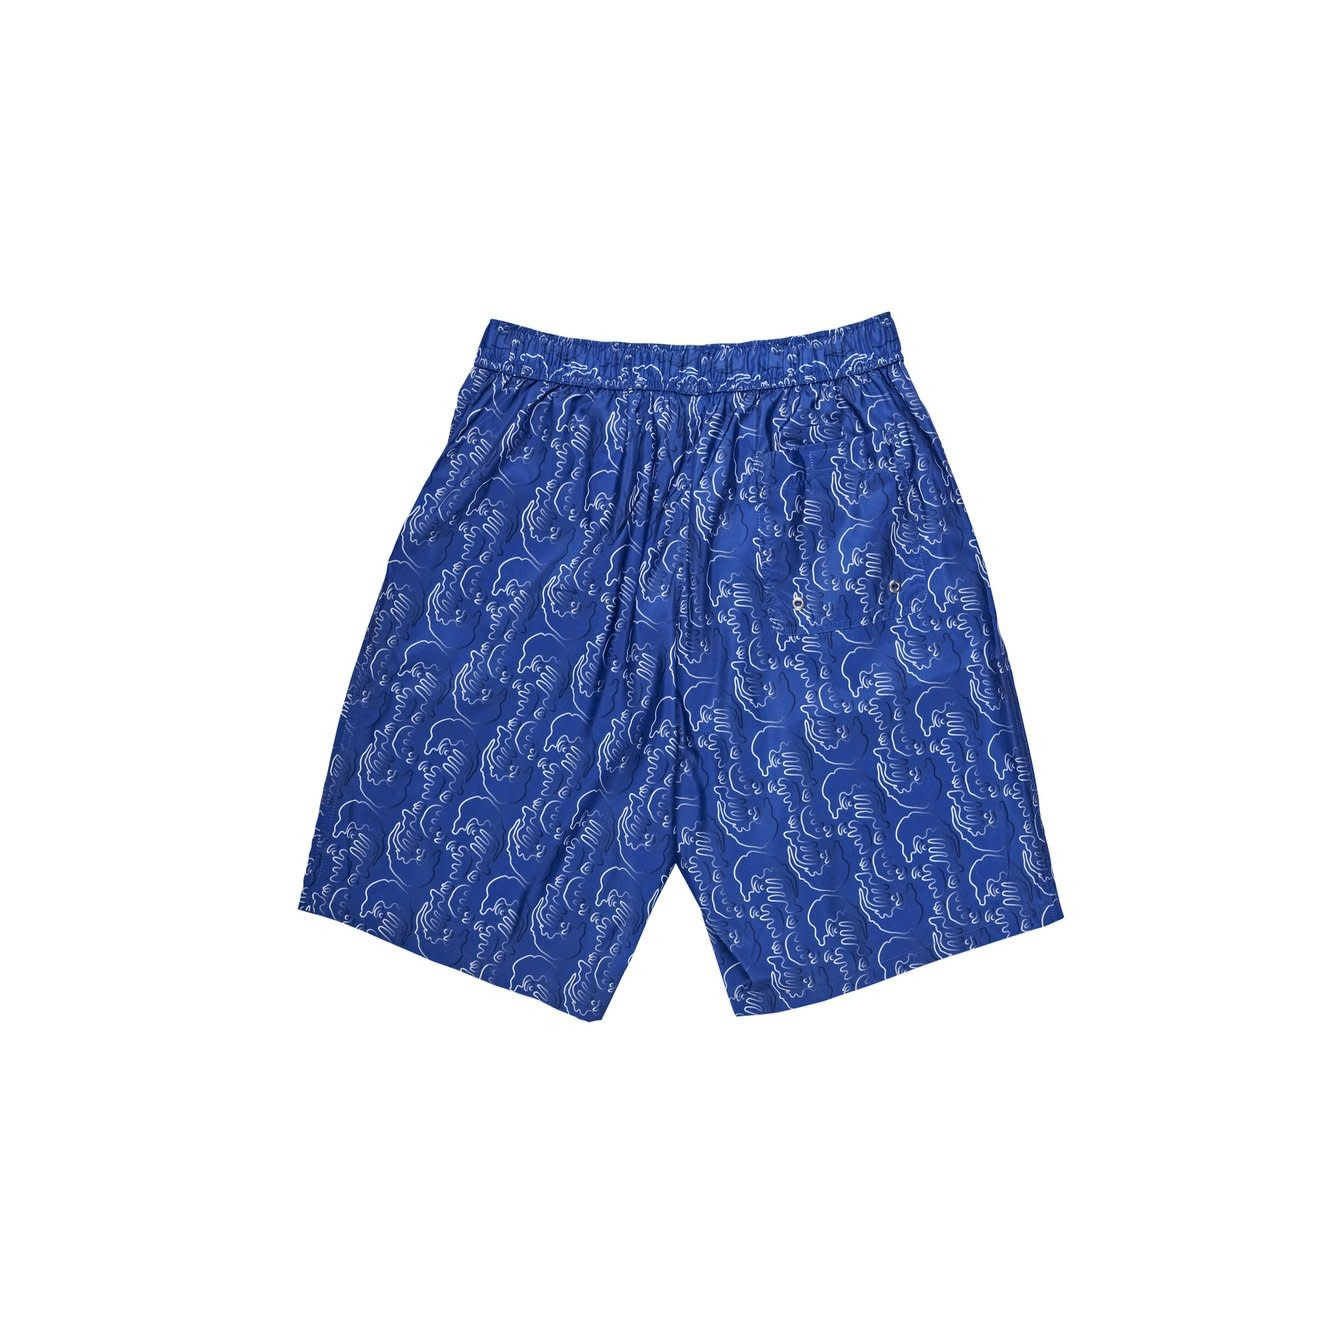 Polar Skate Co. Art Swim Shorts (Faces) Blue